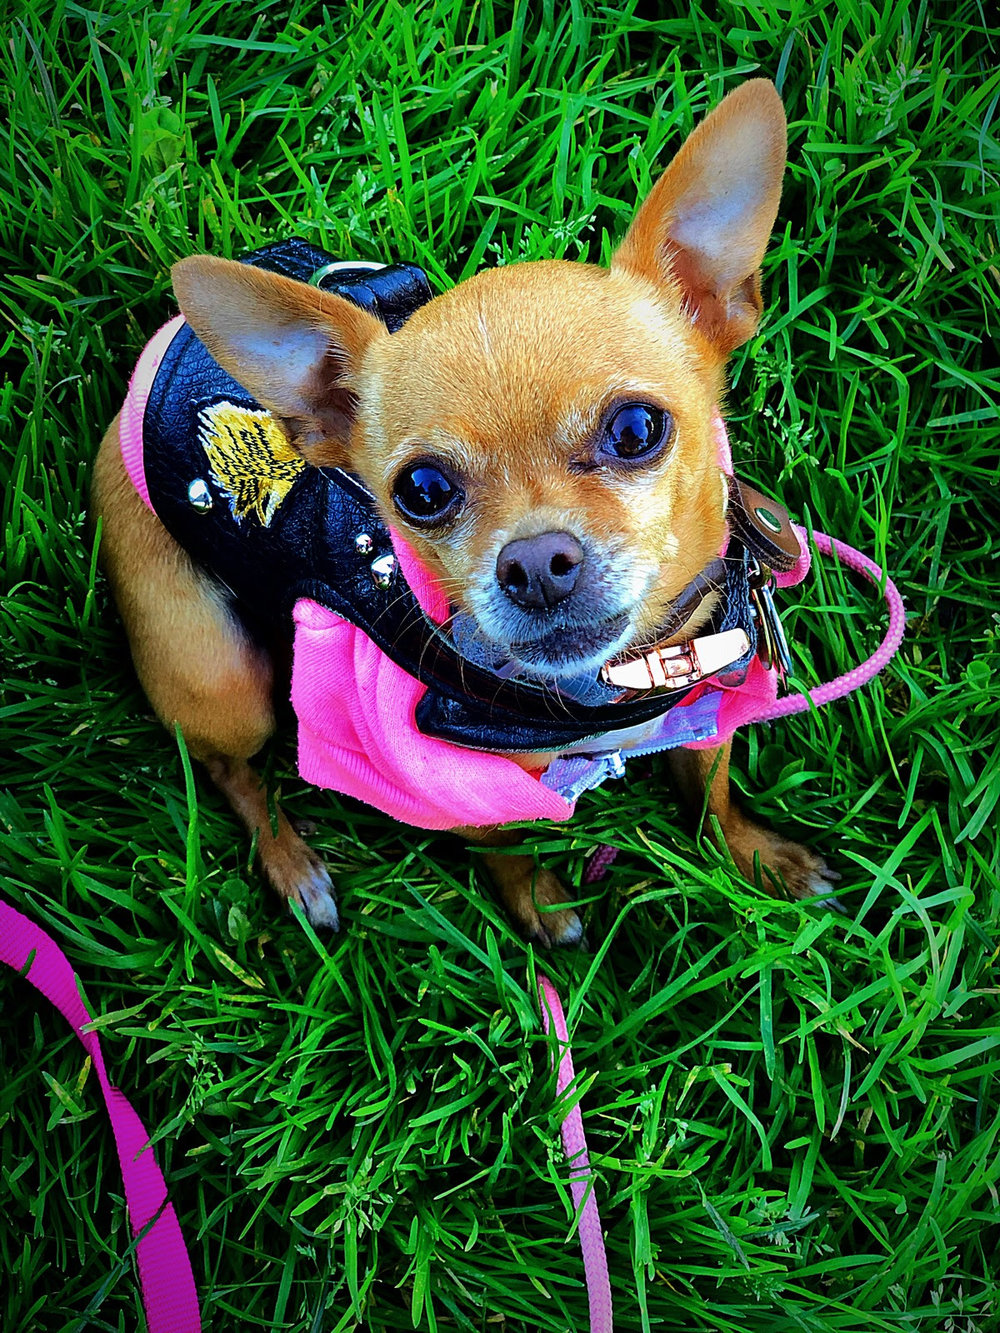 GRETA TINY DANCER - BREED: Teacup Chihuahua | RESCUED, Grateful Dogs Rescue (SF, CA) AGE: 7 yearsLOVES: snoozing in soft blankets, being warm, carrots, sweet potato fries, sunbathingHATES: clouds, cold, rain, anyone getting too close for comfort, unnecessary socializing